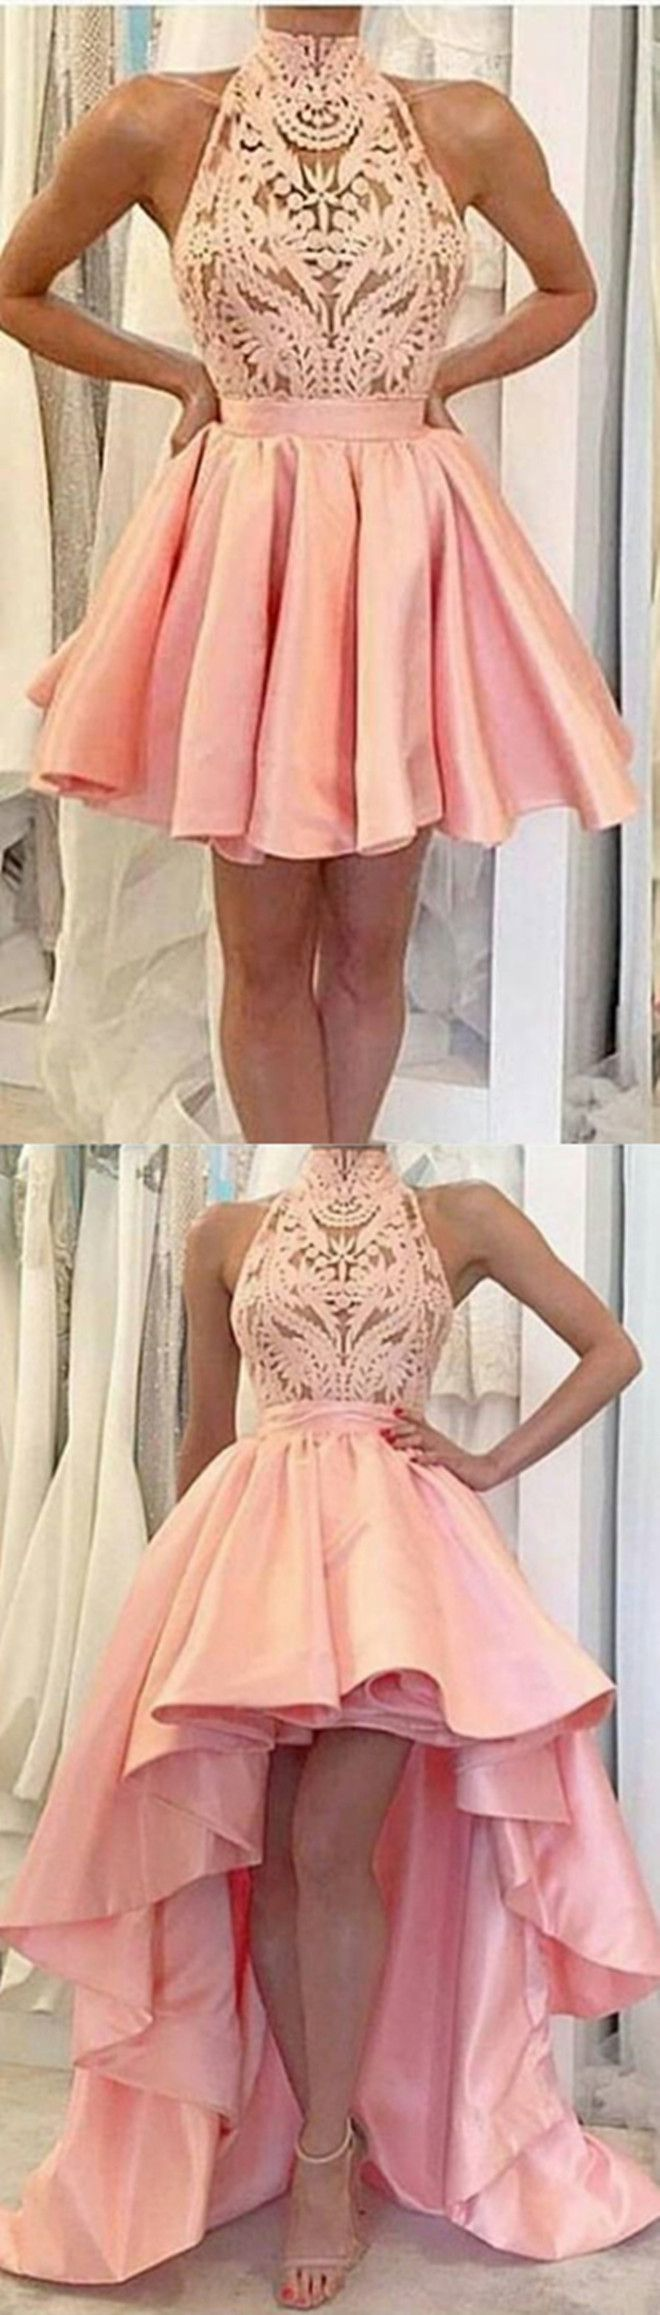 2017 homecoming dresses,pink homecoming dresses,unique homecoming dresses,high low homecoming dresses @simpledress2480